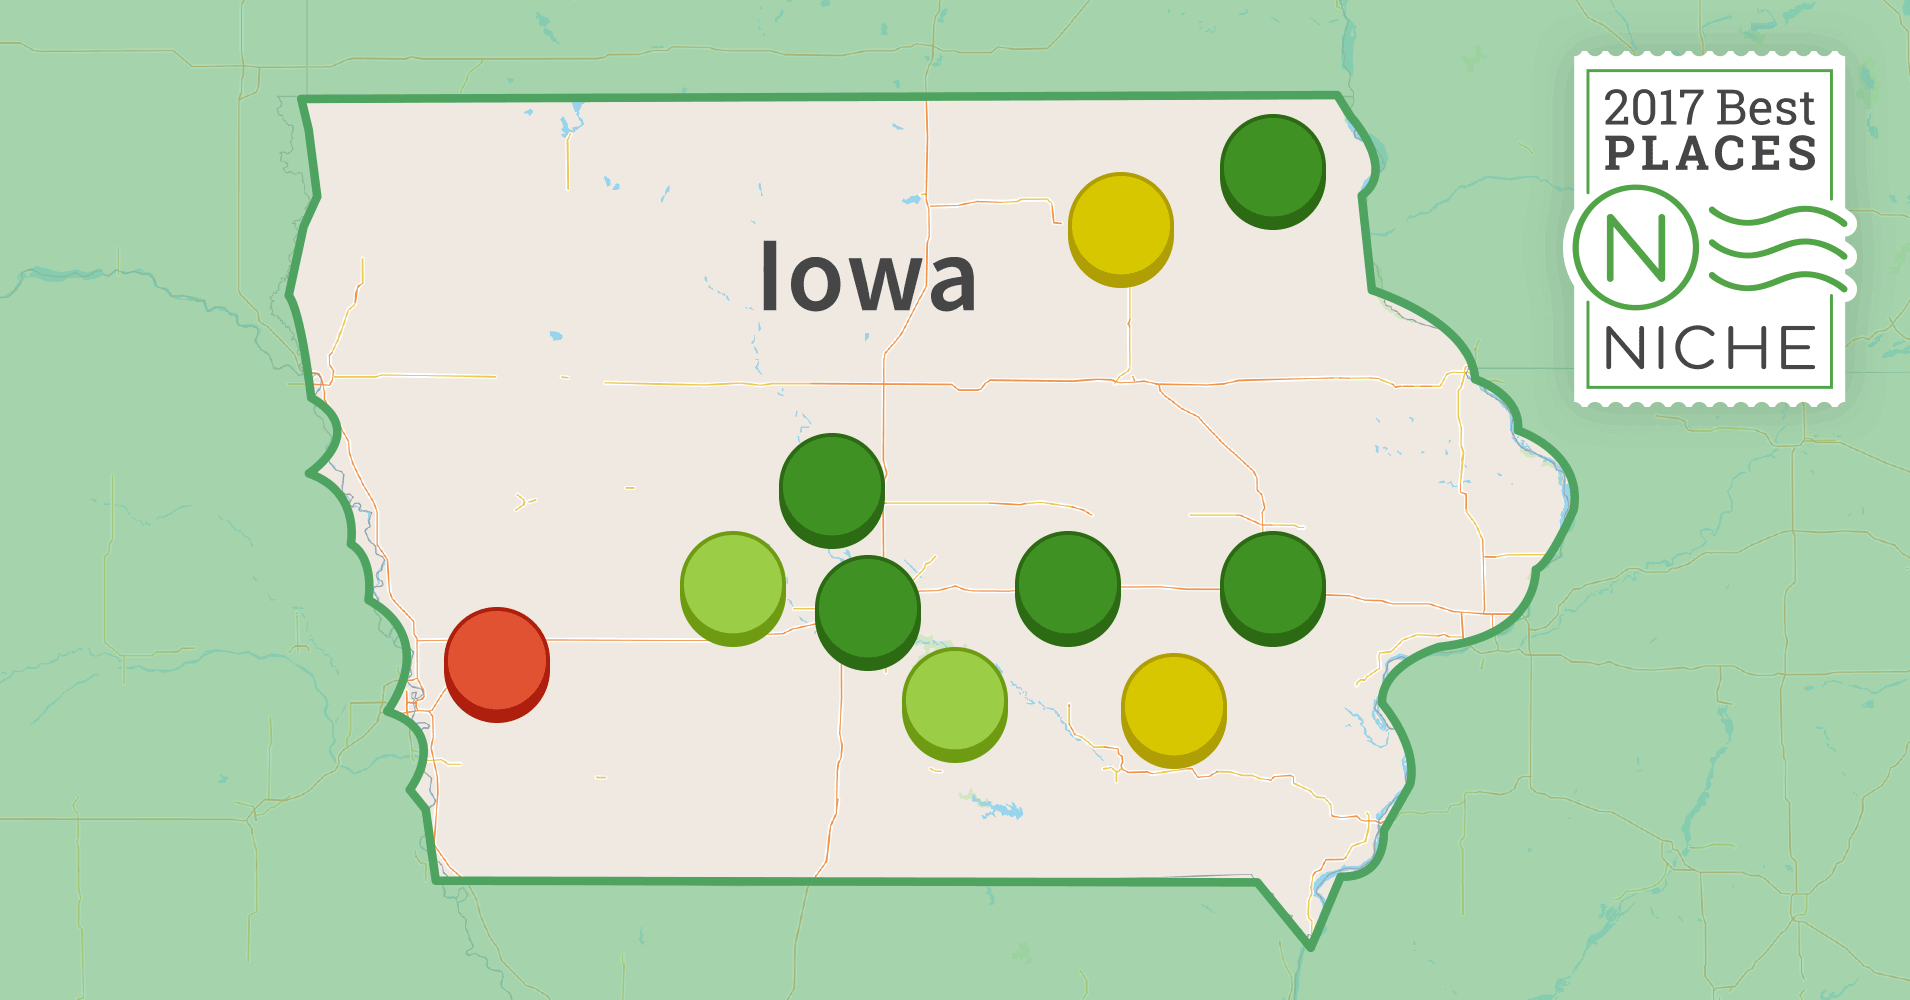 2017 best places to raise a family in iowa niche